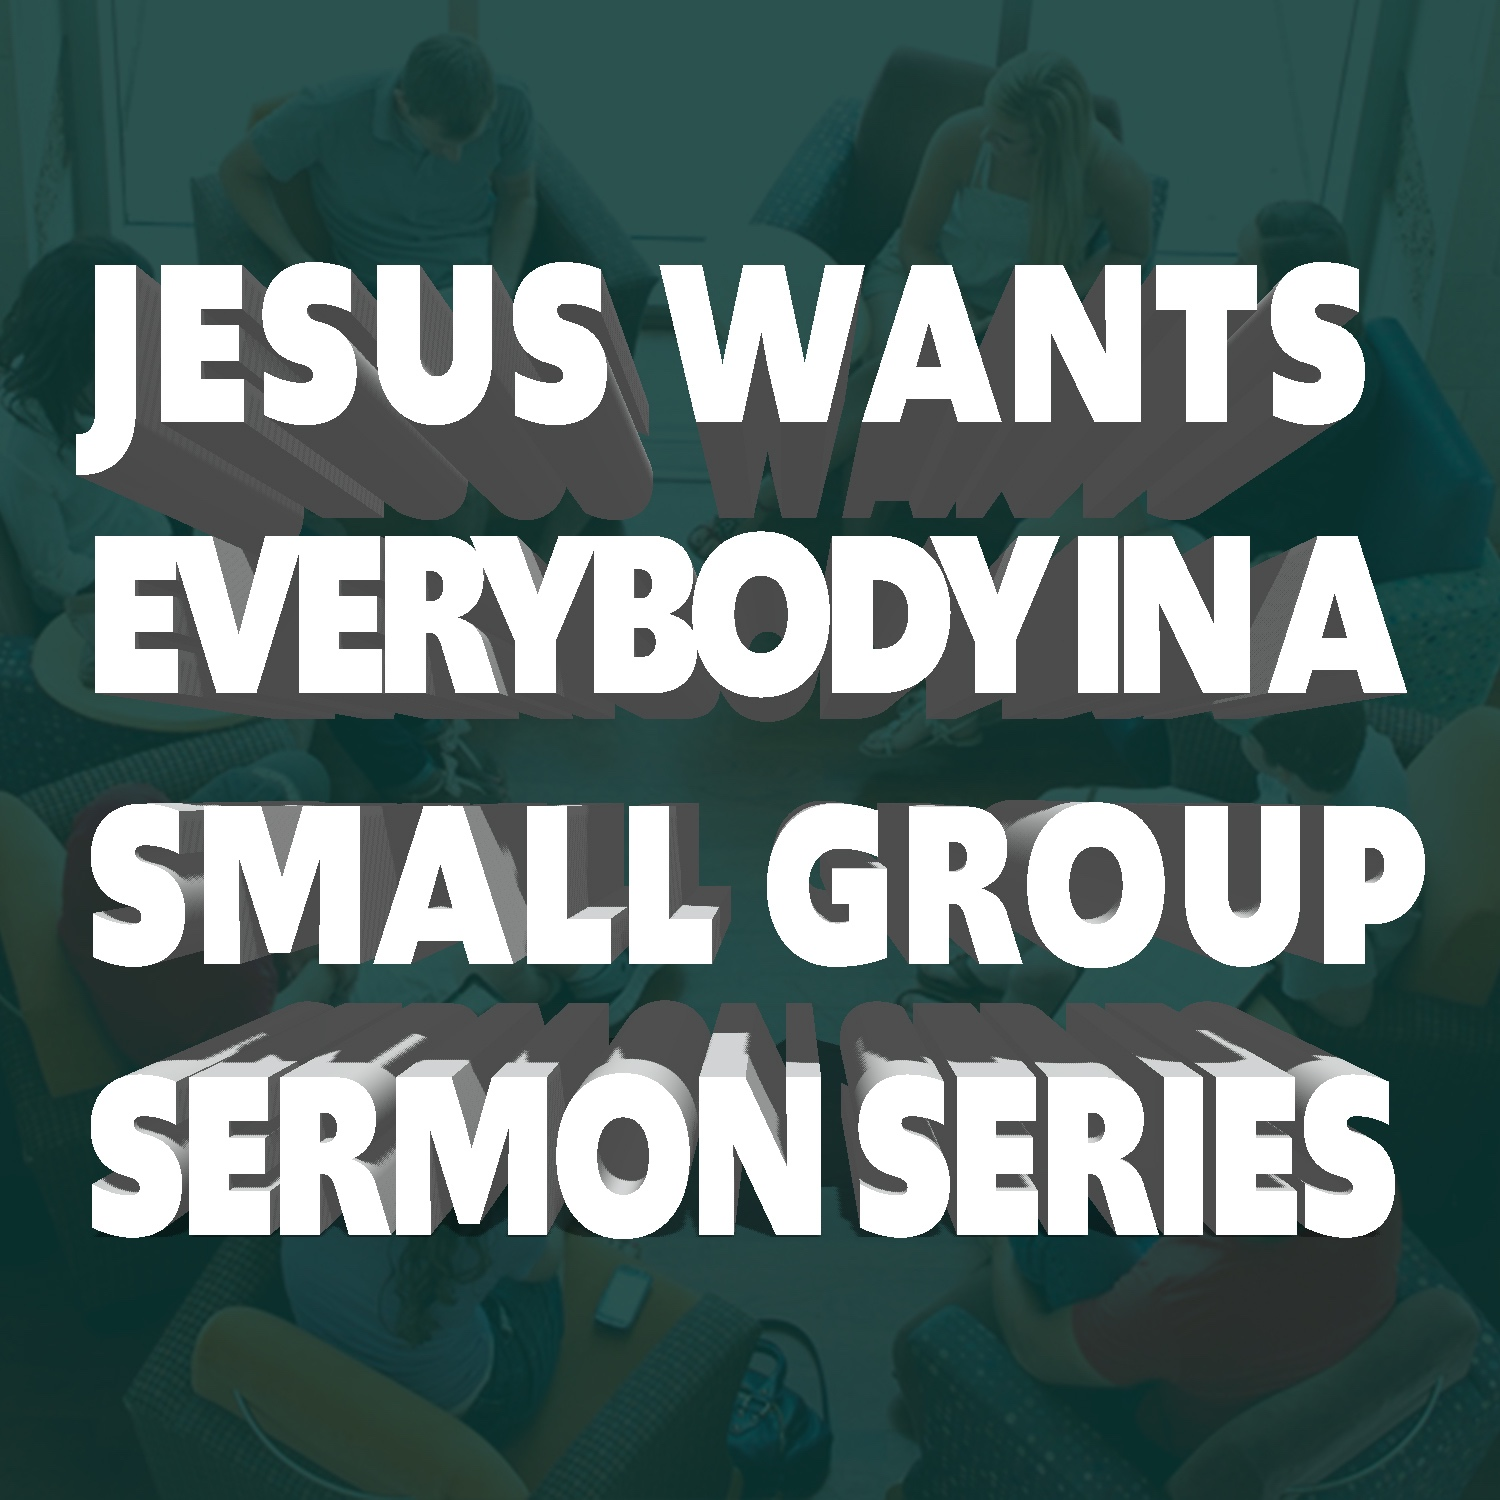 March 2019 - Jesus and myself want everybody at Go Church in a small group!